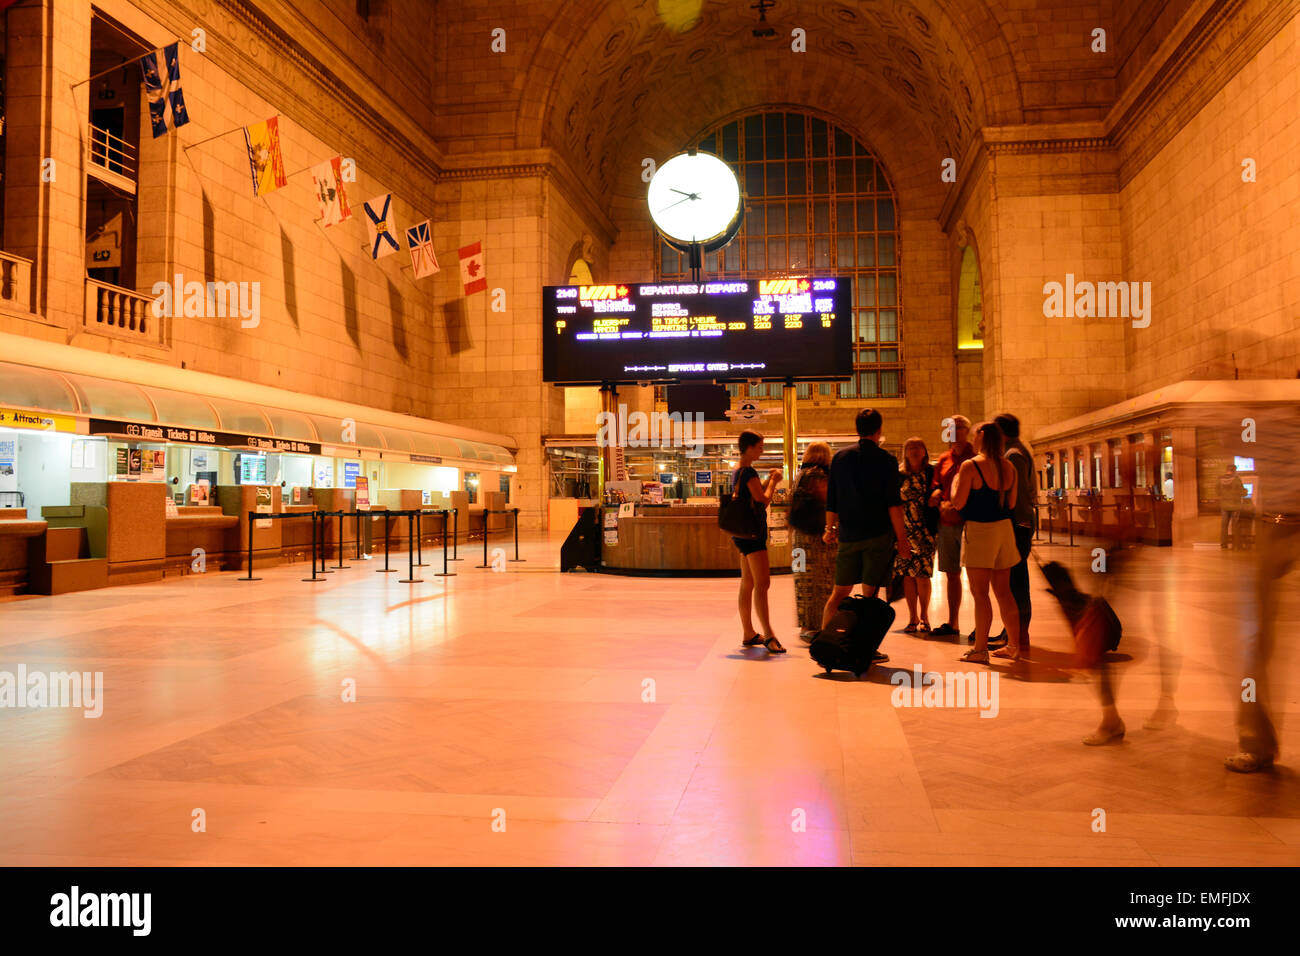 Union station at night, Toronto, Canada - Stock Image